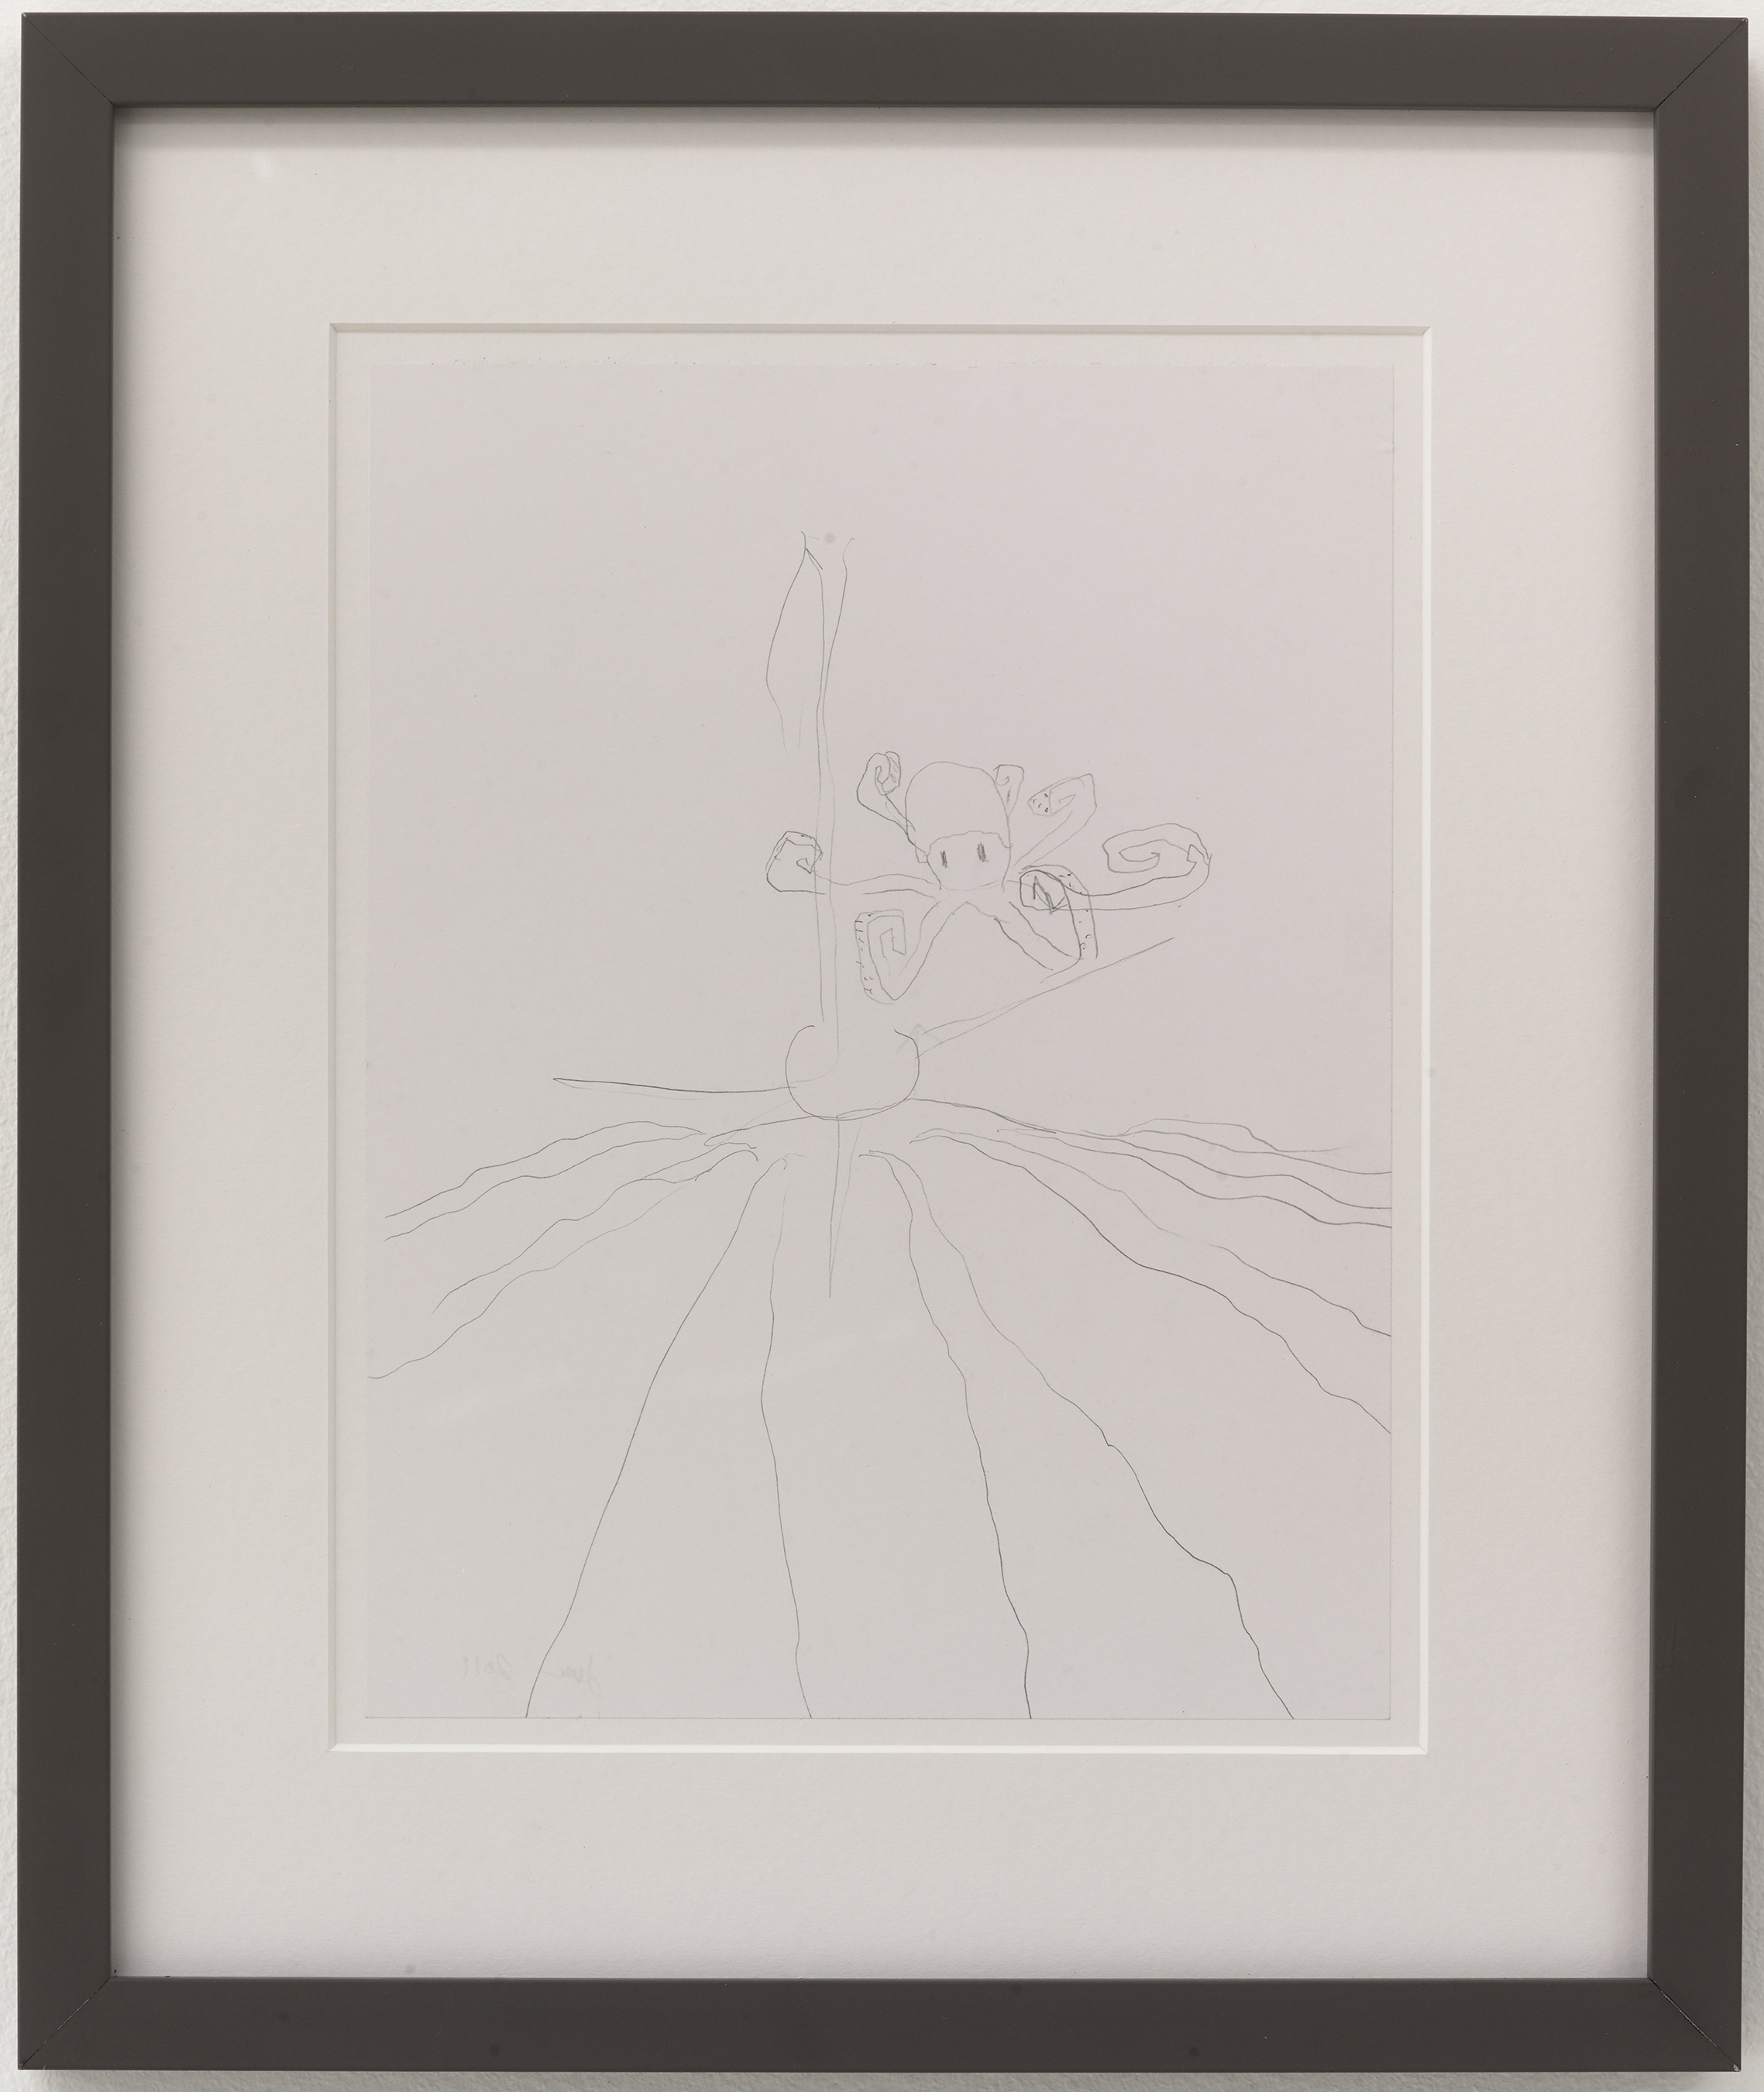 Jesse Sullivan,  Untitled , 2019, Pencil on paper, framed, 11 × 8 1/2 inches